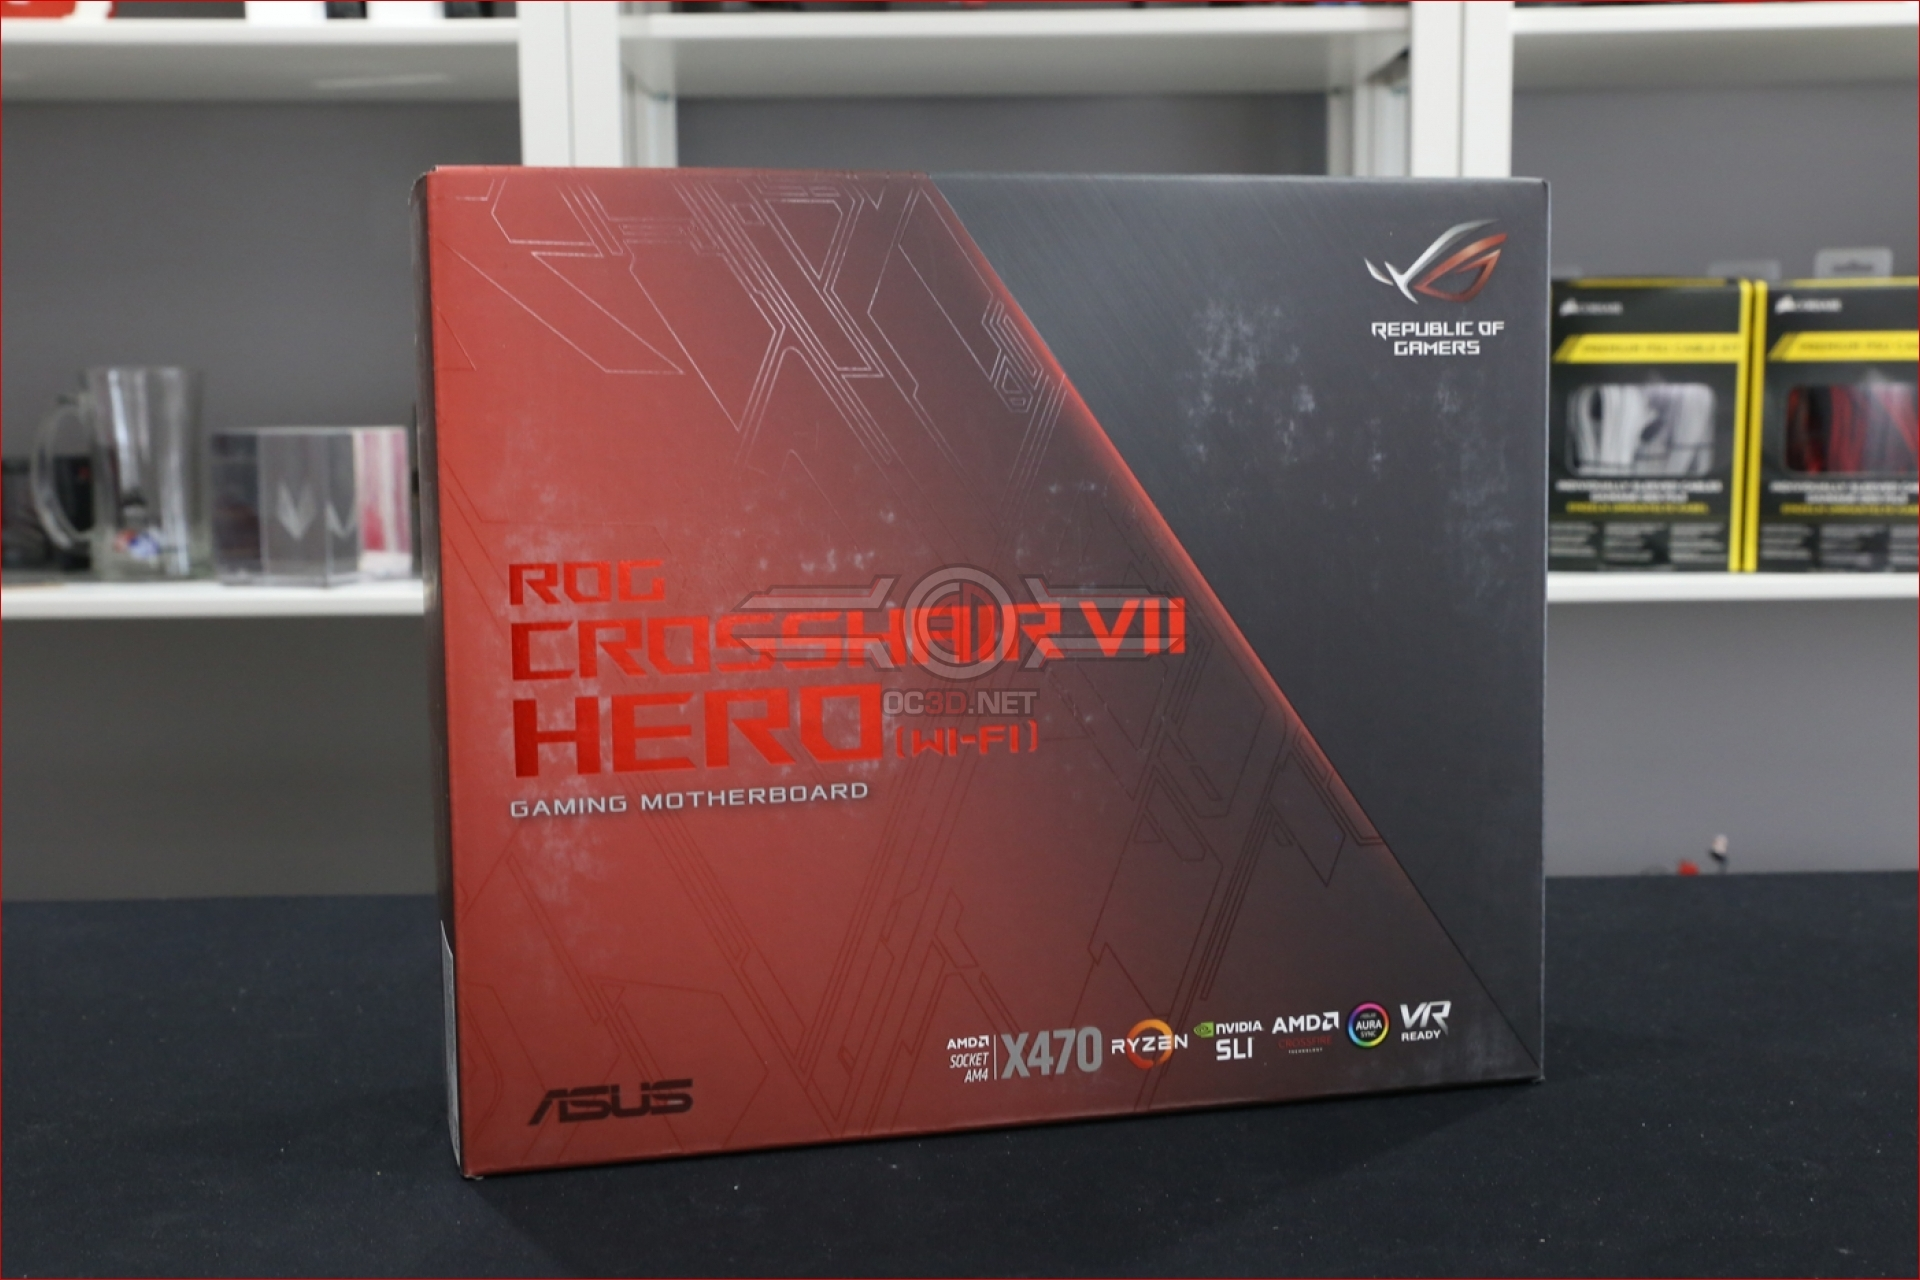 ASUS ROG X470 Crosshair VII Hero Preview | Introduction and